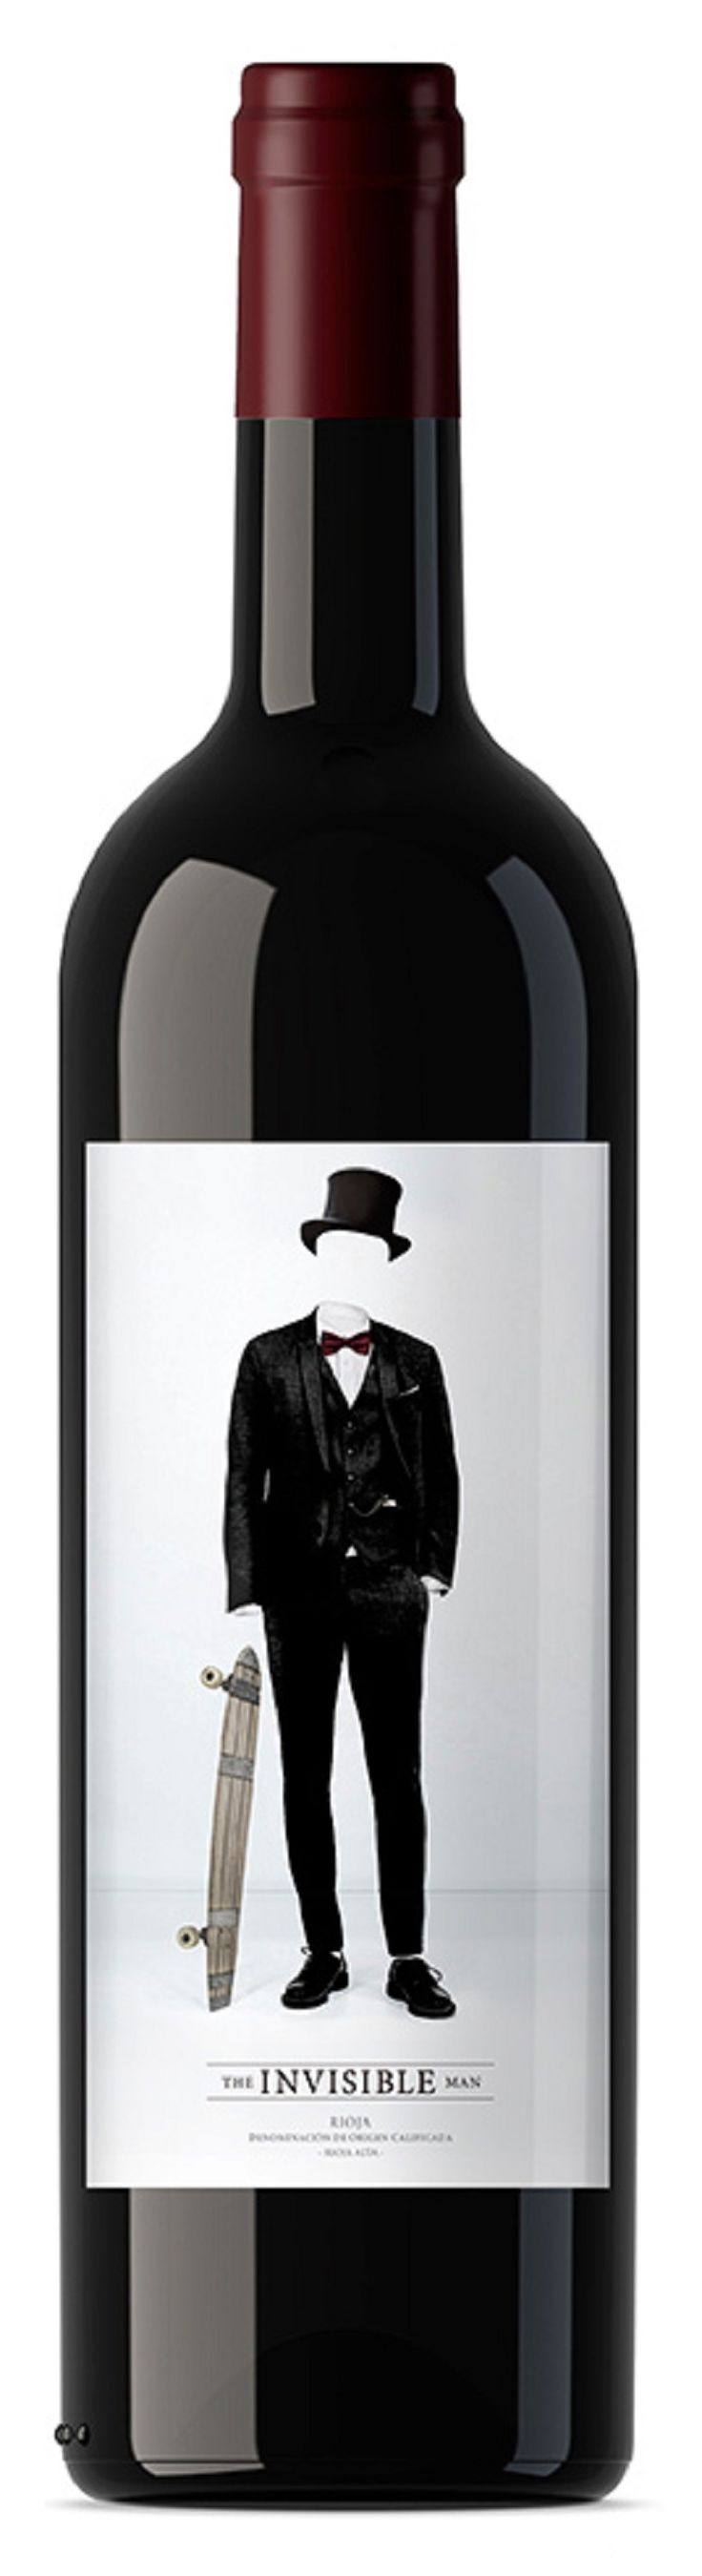 rioja-the-invisible-man-casa-rojo-2728-grande.png (immagine PNG, 818 × 3000 pixel)